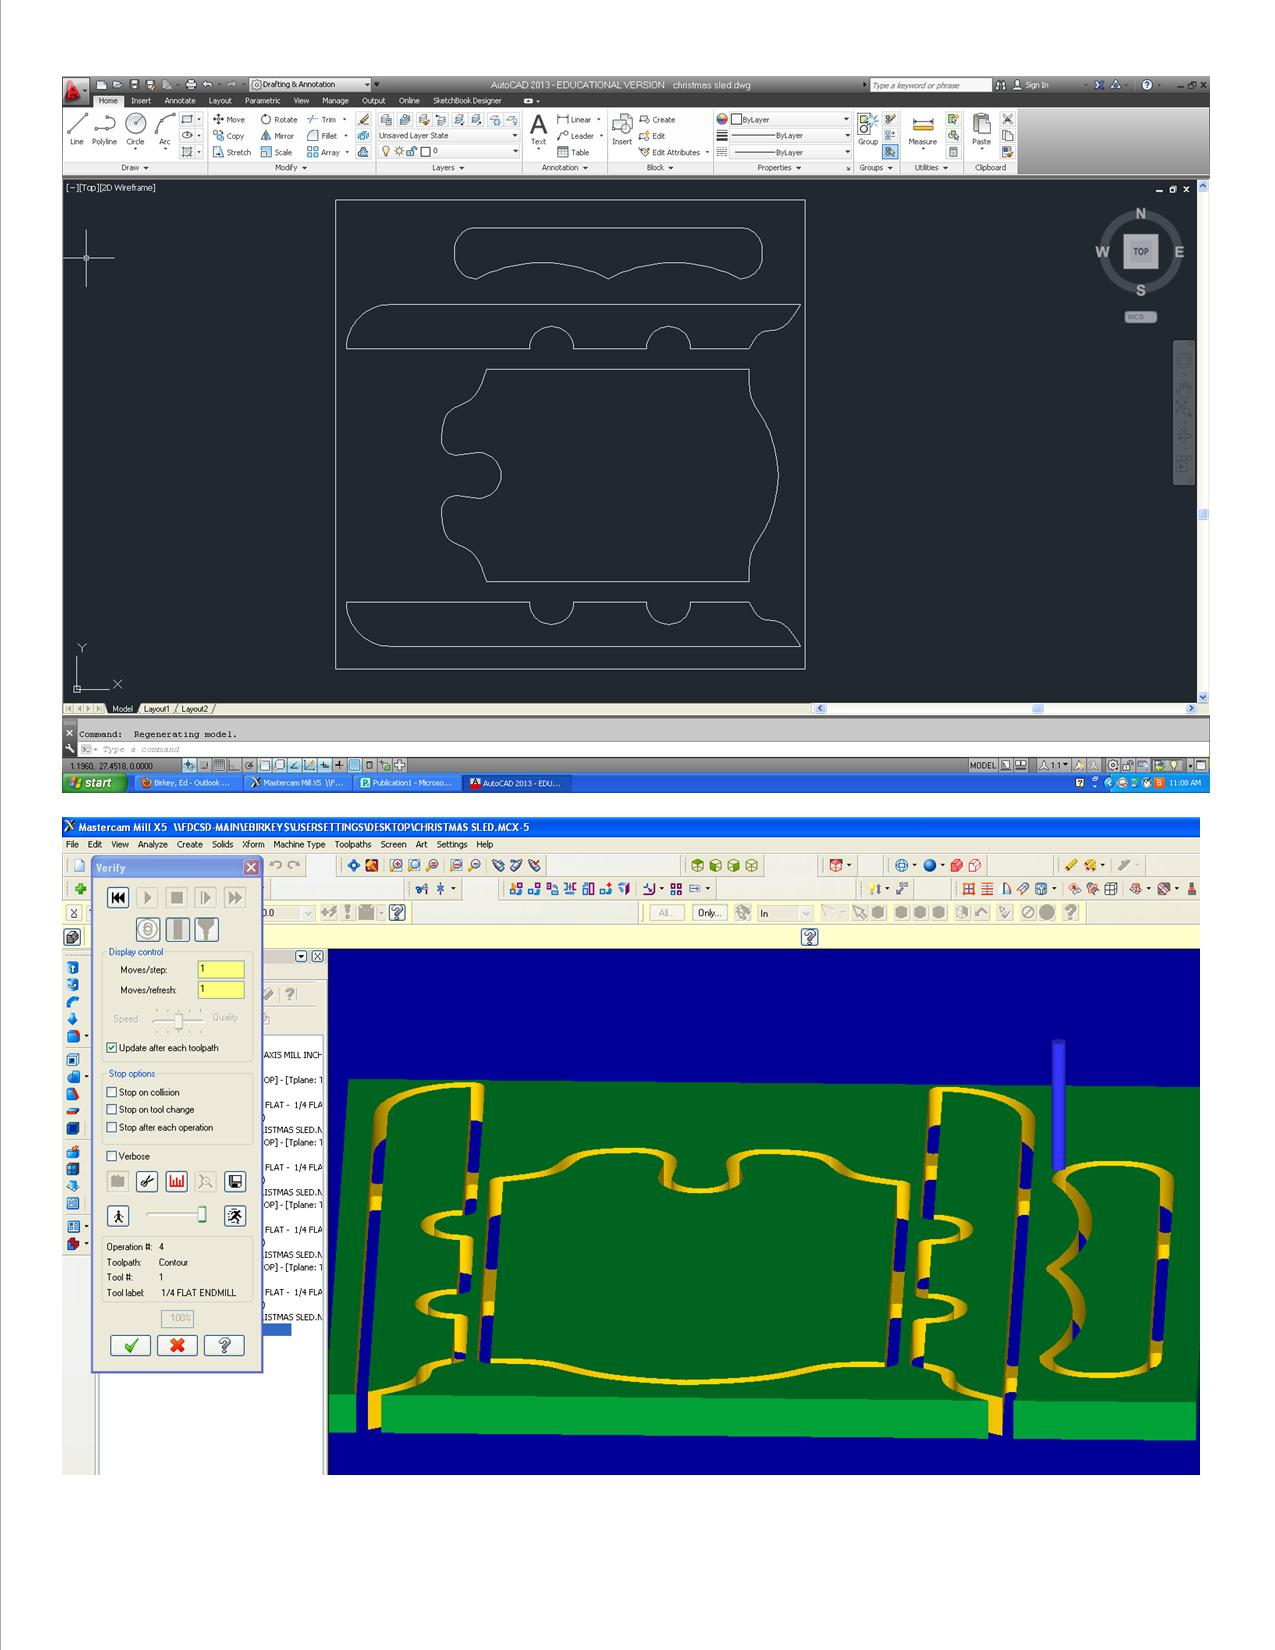 AUTOCAD AND MASTERCAM SCREEN SHOT OF PROJECT